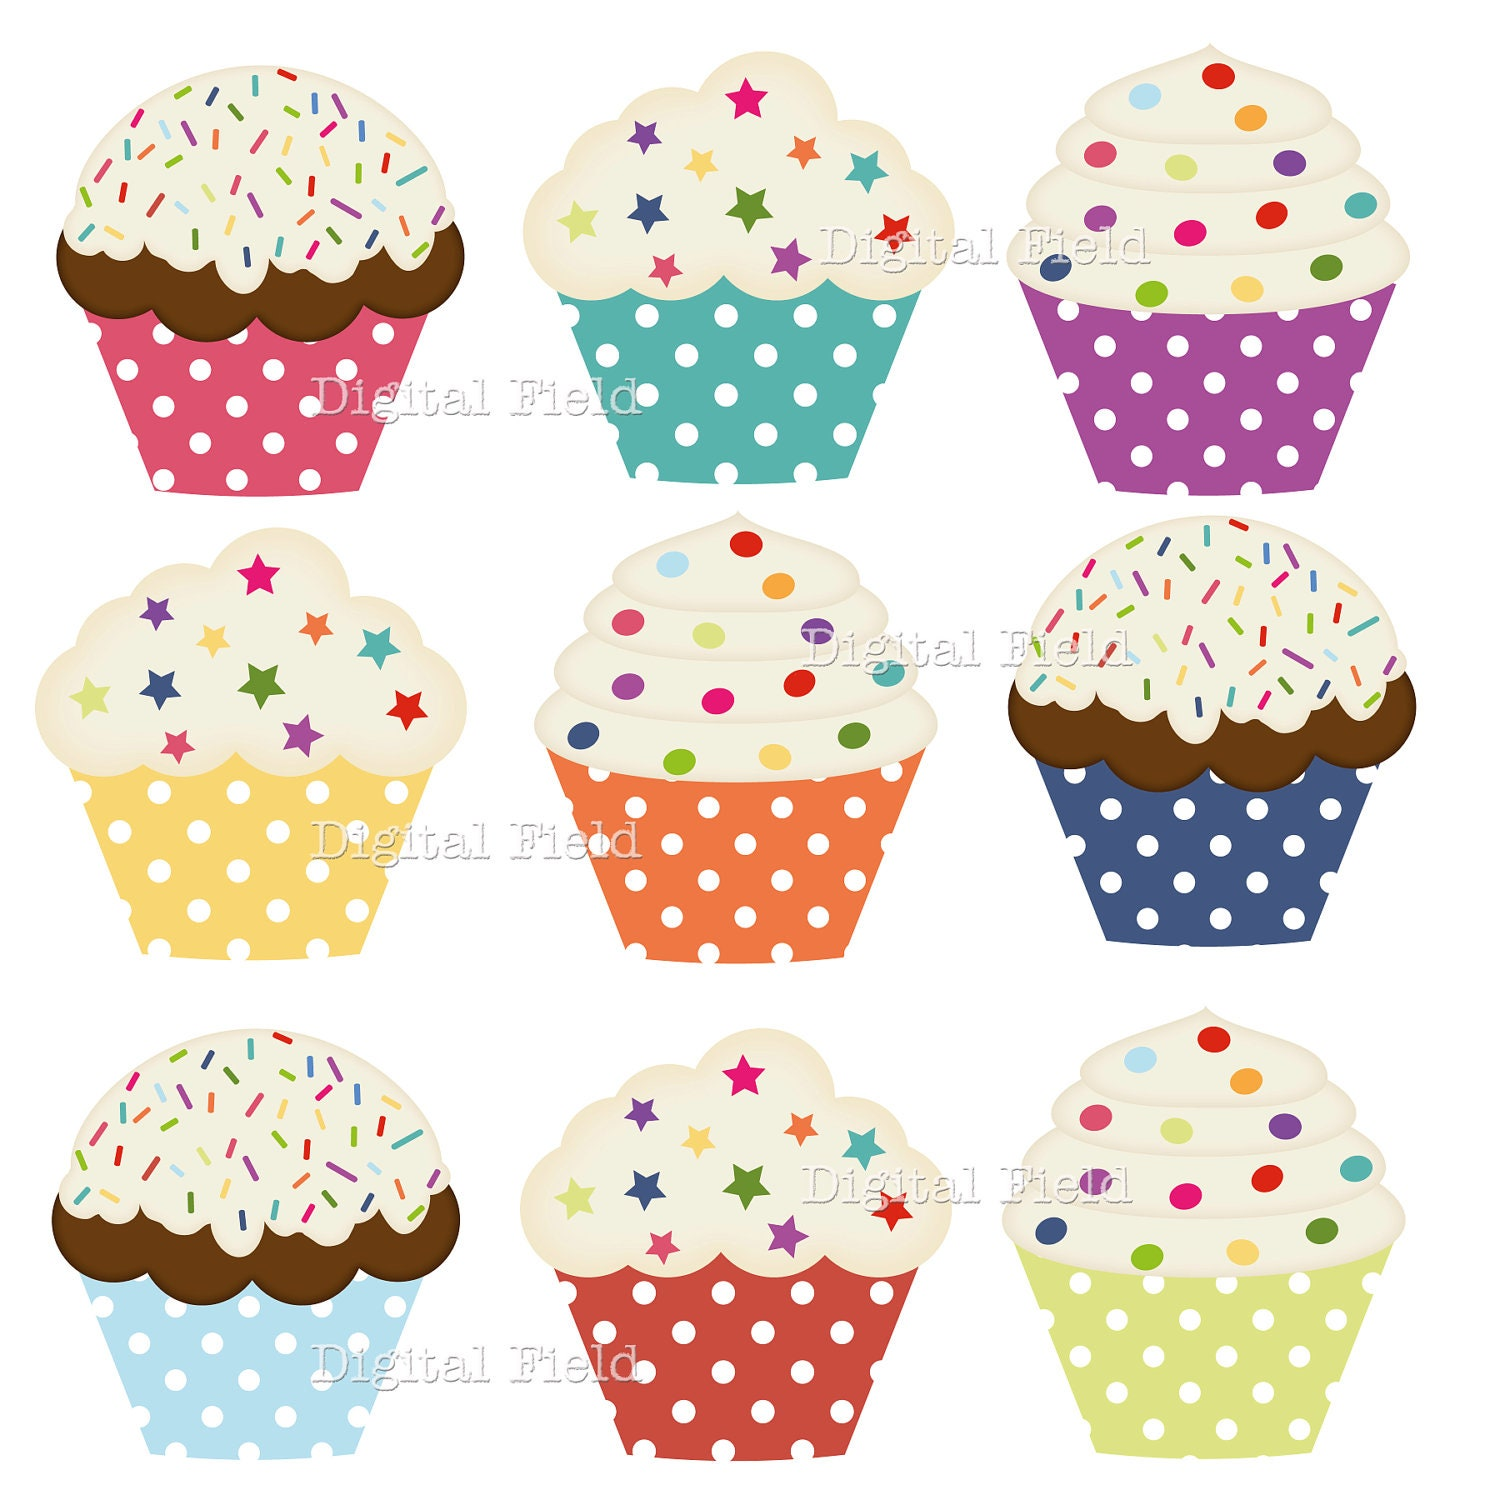 Polka Dot Cupcake Clip Art Set colorful printable digital